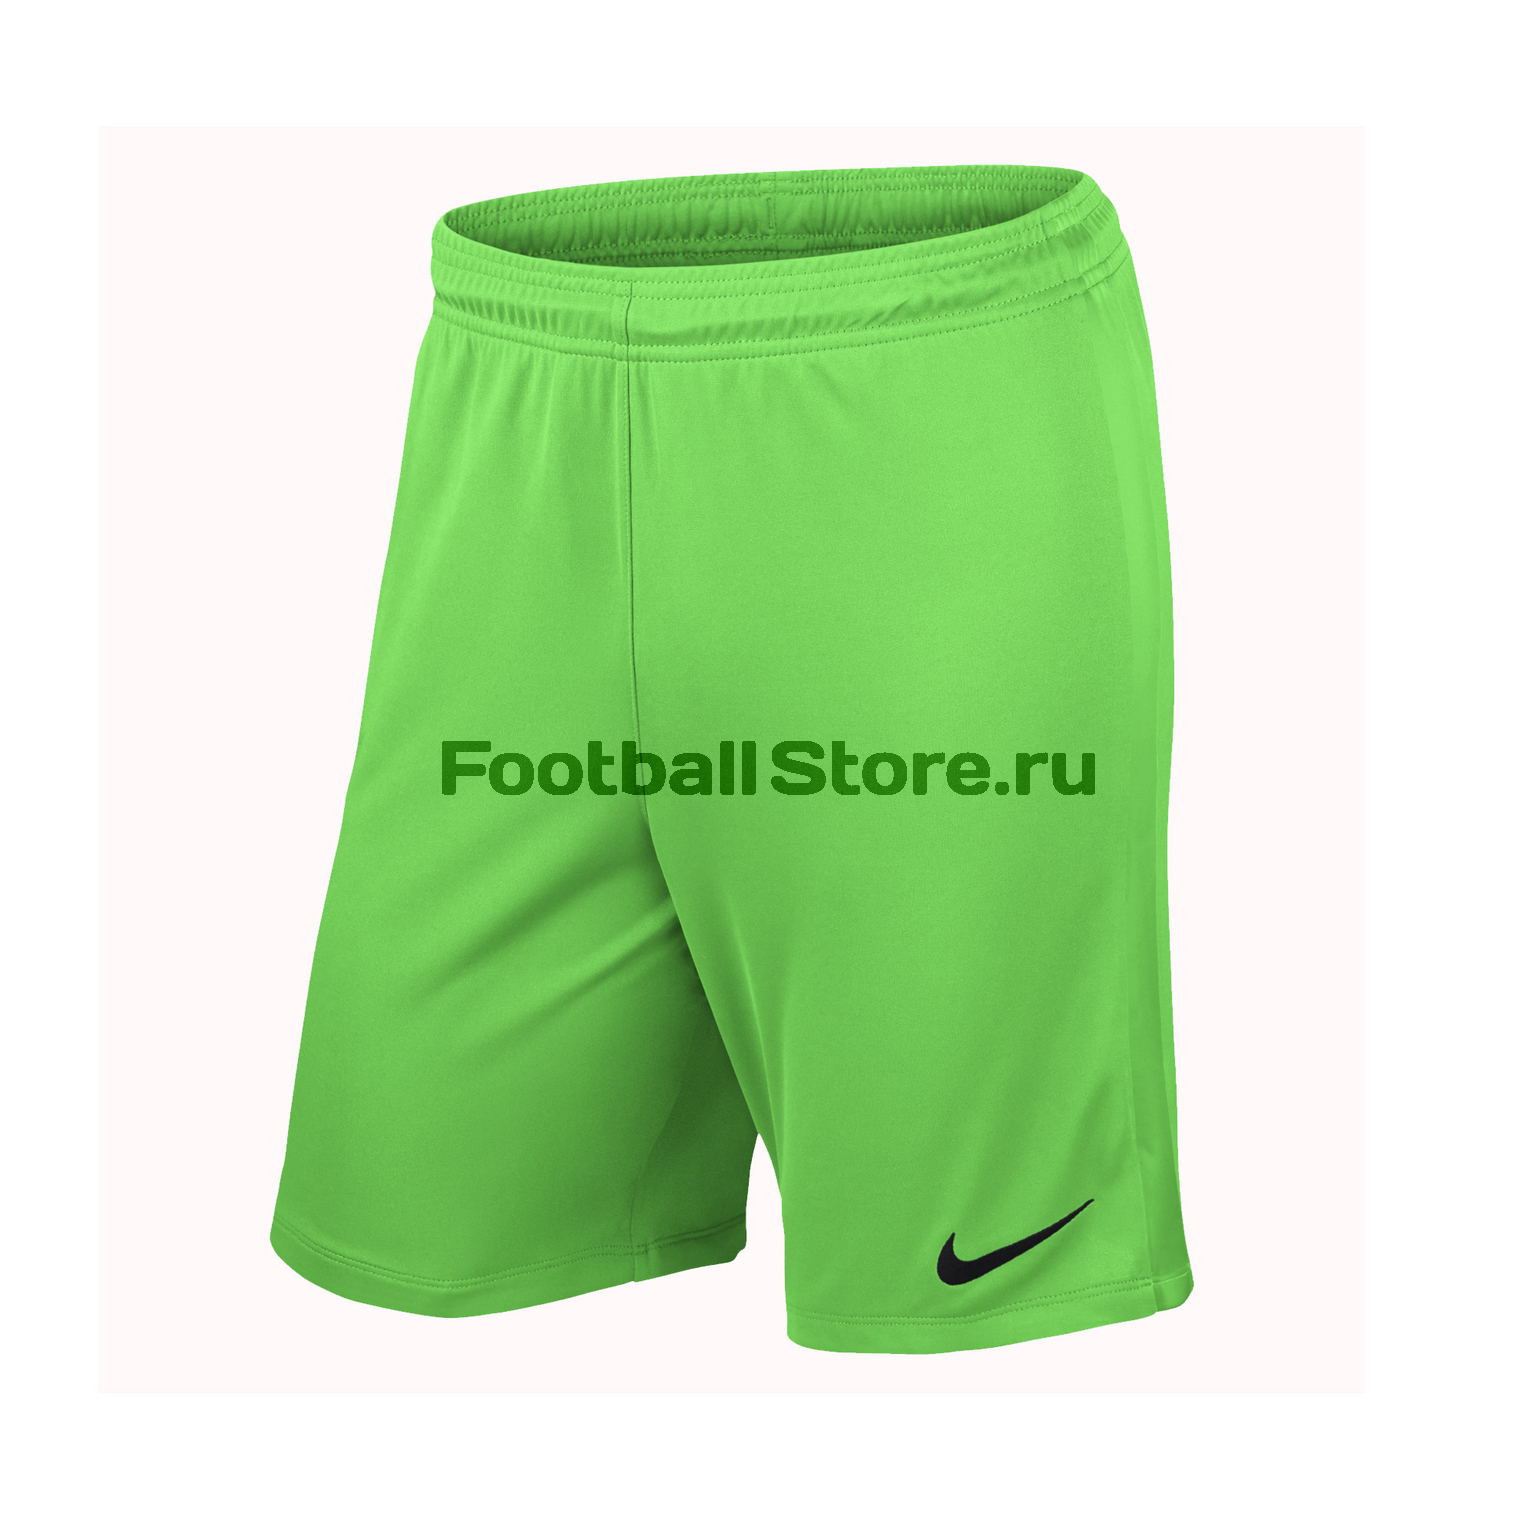 Шорты игровые Nike YTH League Knit Short NB 725990-398